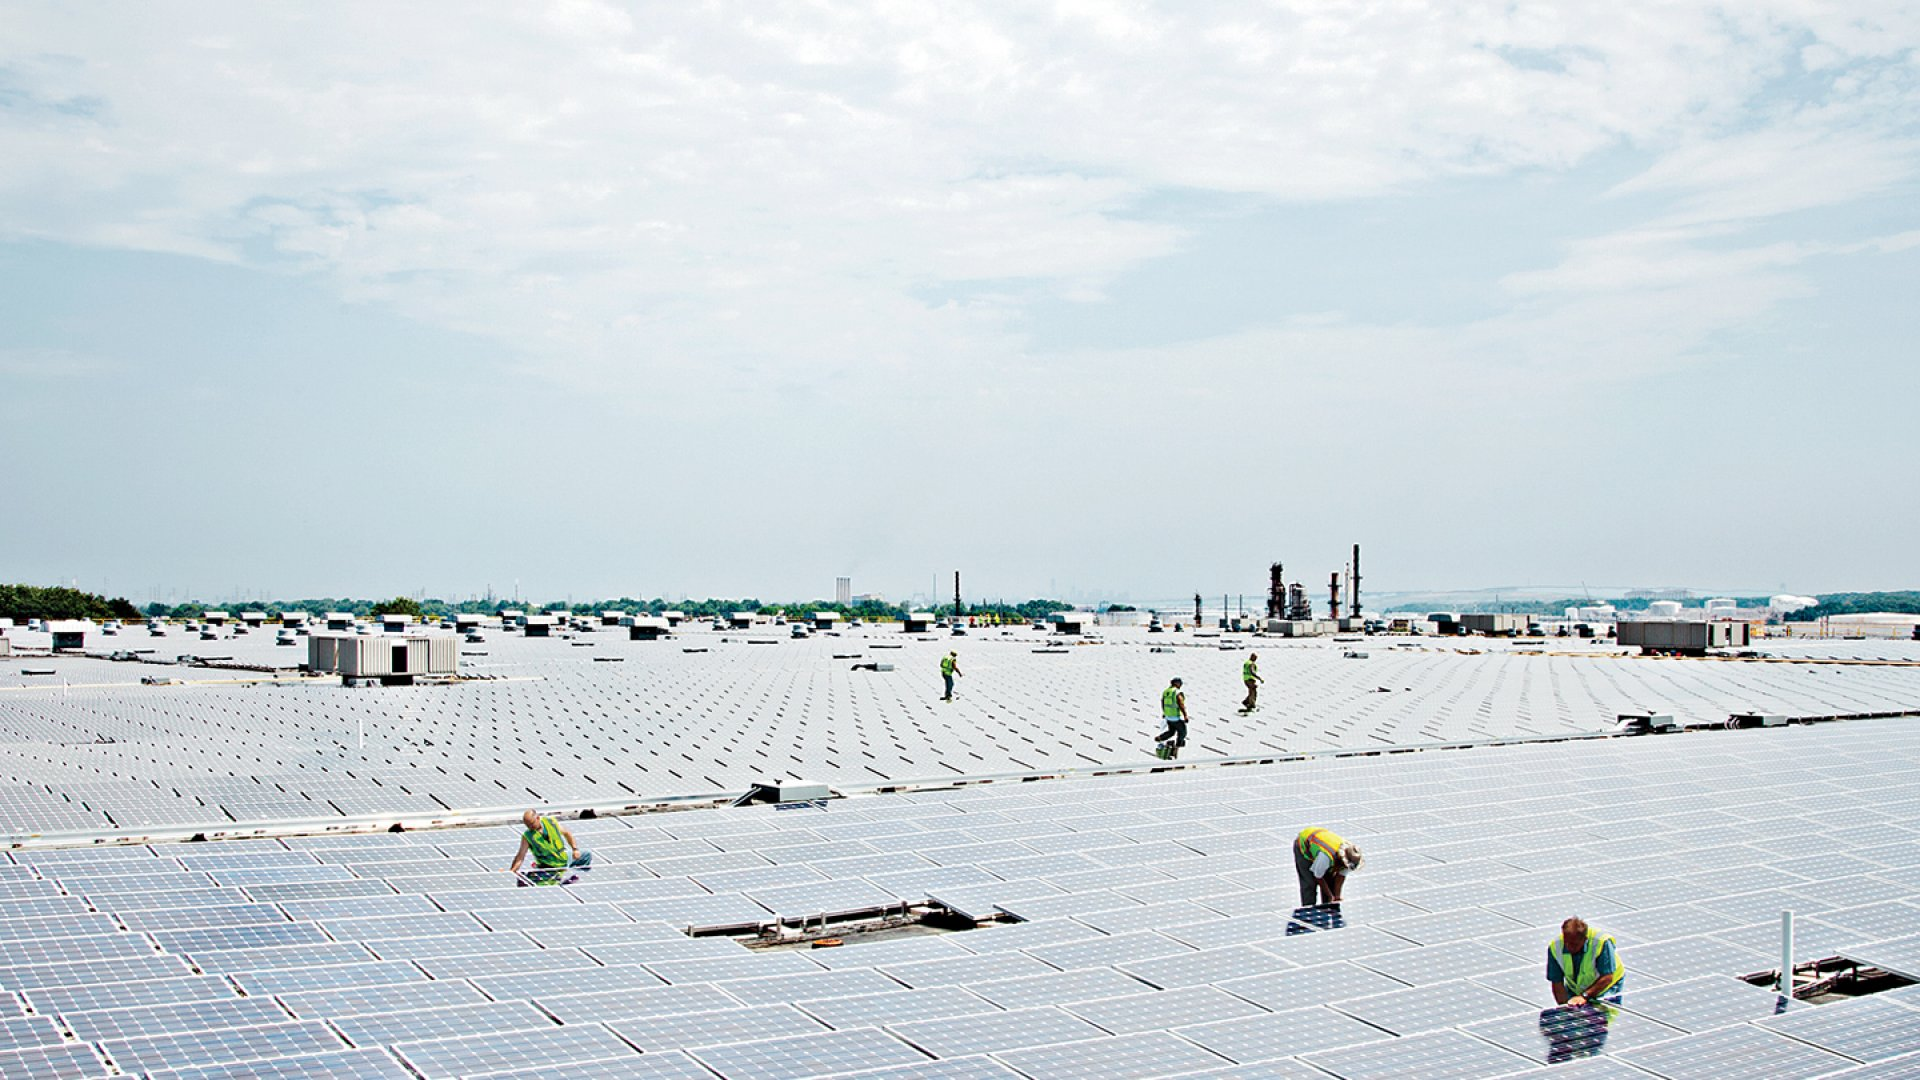 <strong>Sunny outlook</strong> Vanguard Energy Partners is among the Inc. 500 companies bold enough to have opened for business in 2008. The company (No. 212 on the list) is installing this million-square-foot solar array atop a warehouse in New Jersey.